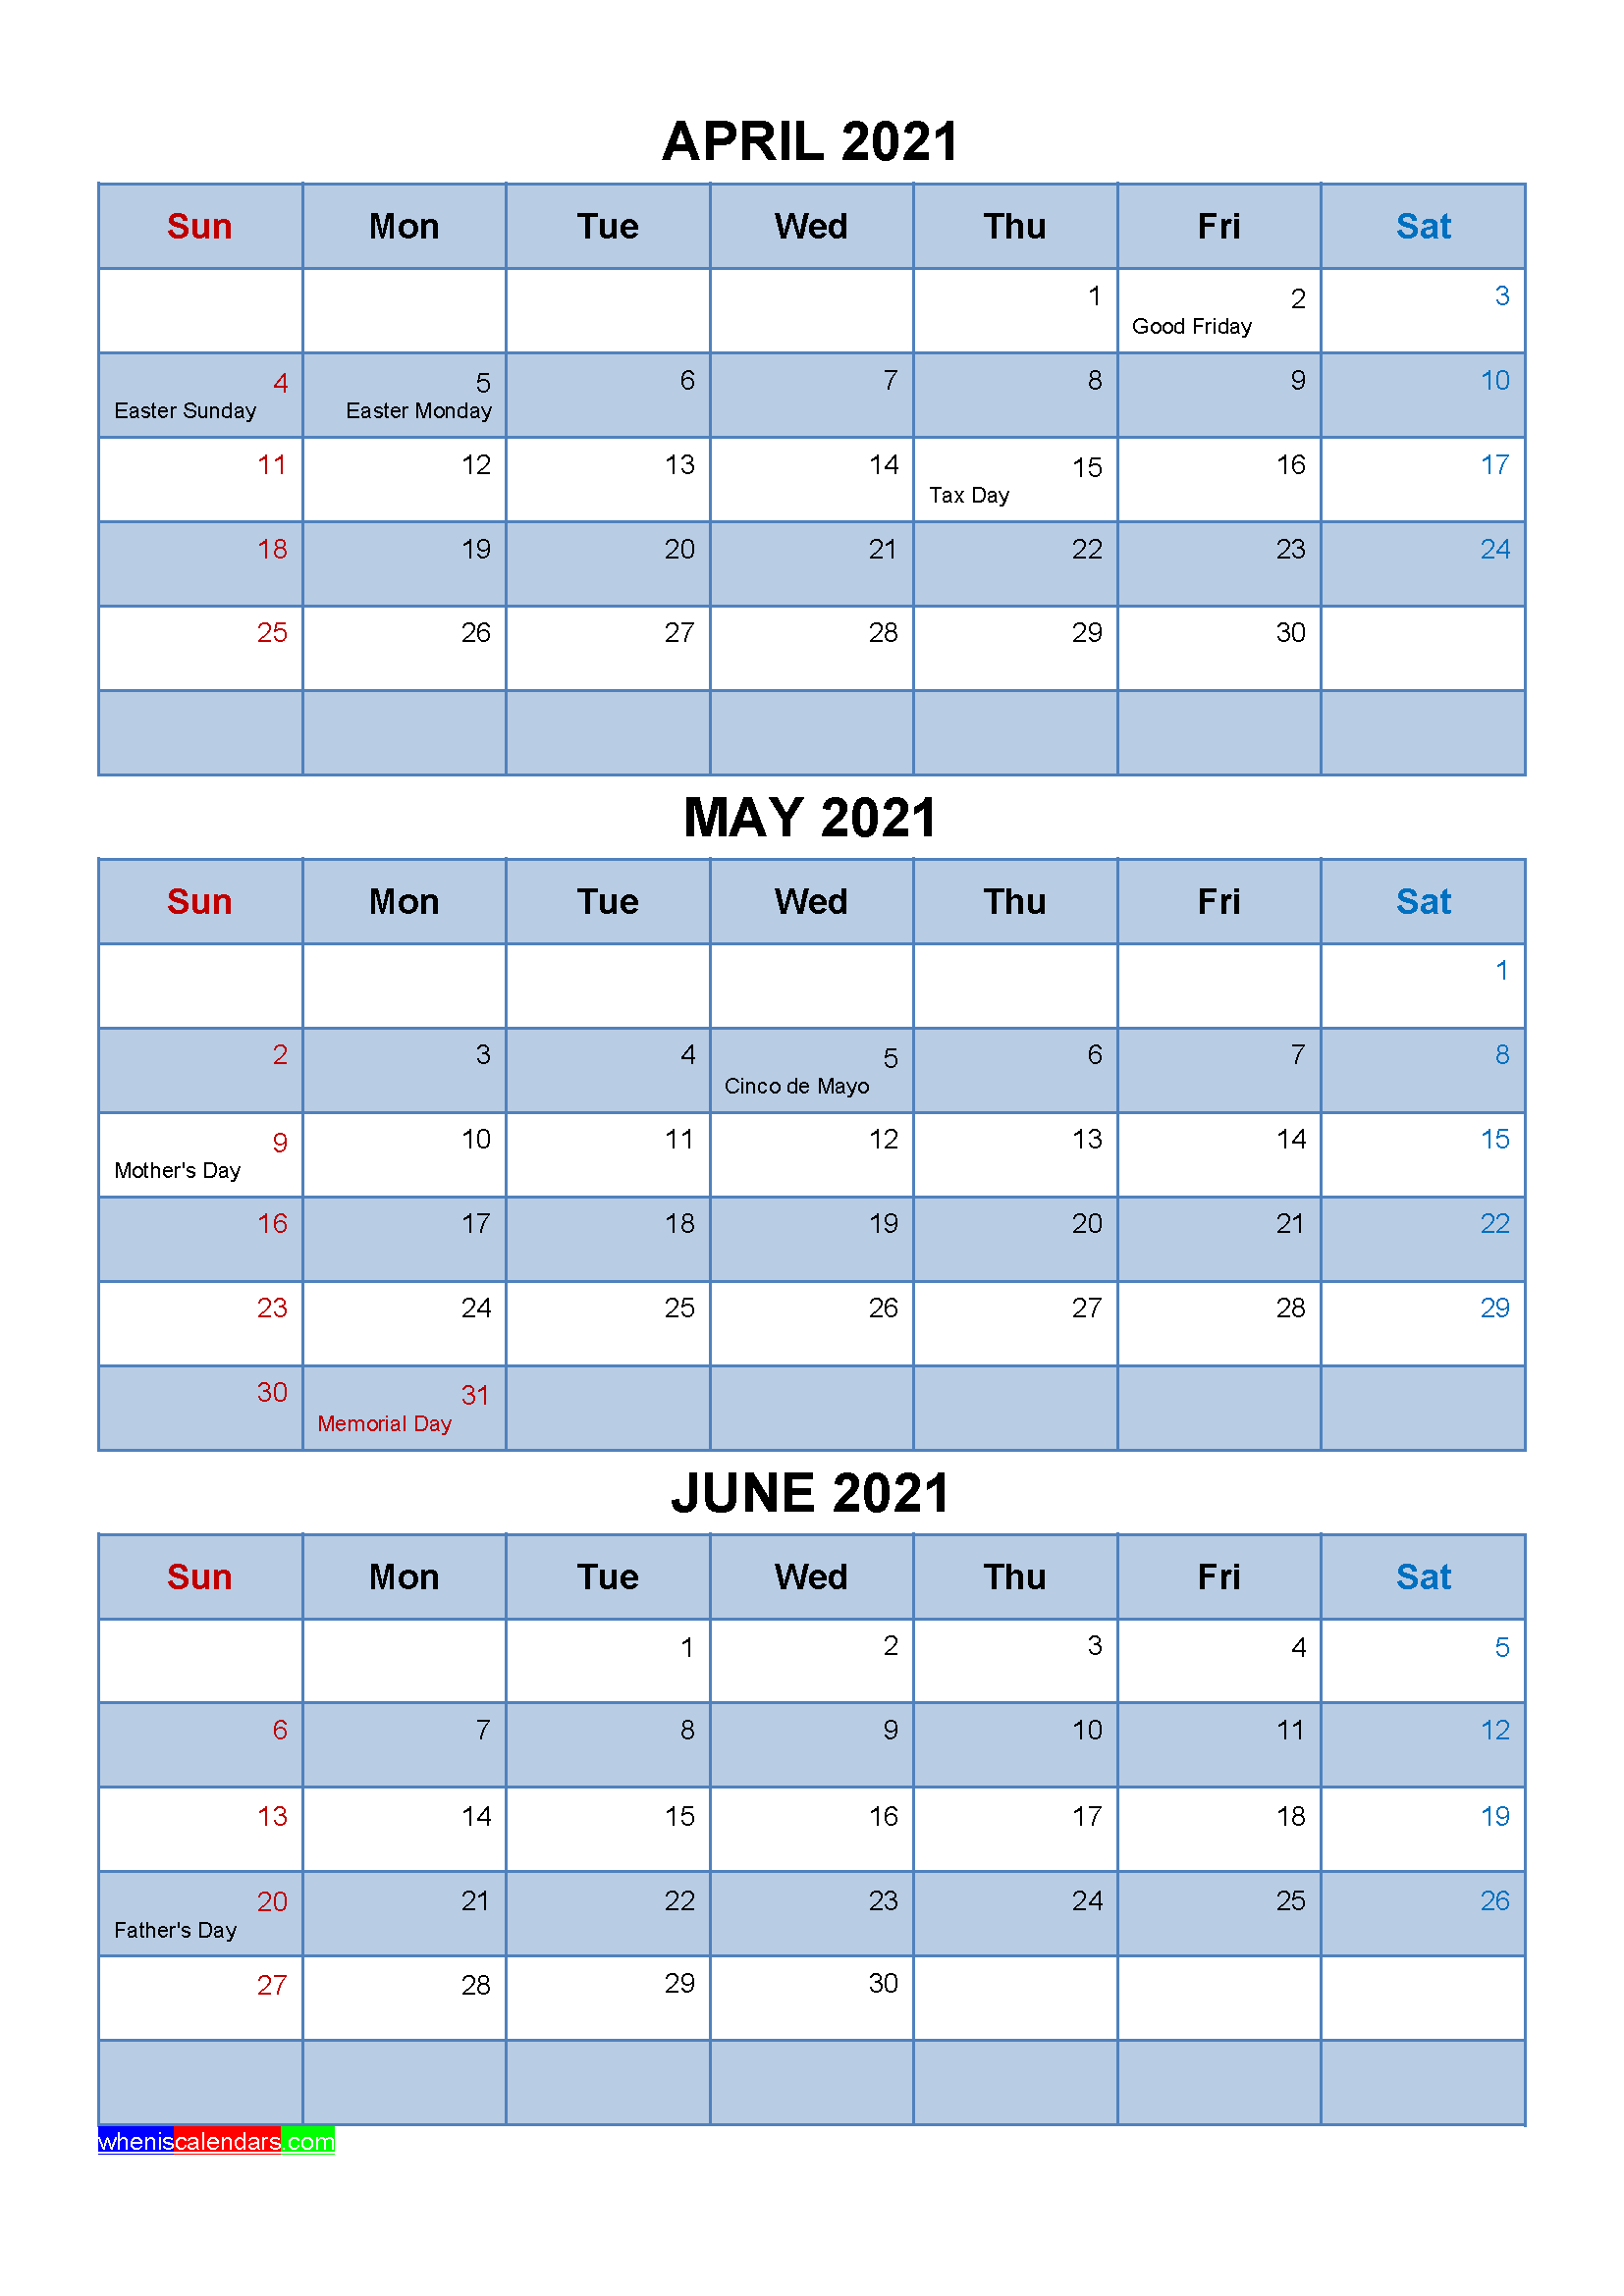 Free Calendar April May June 2021 with Holidays